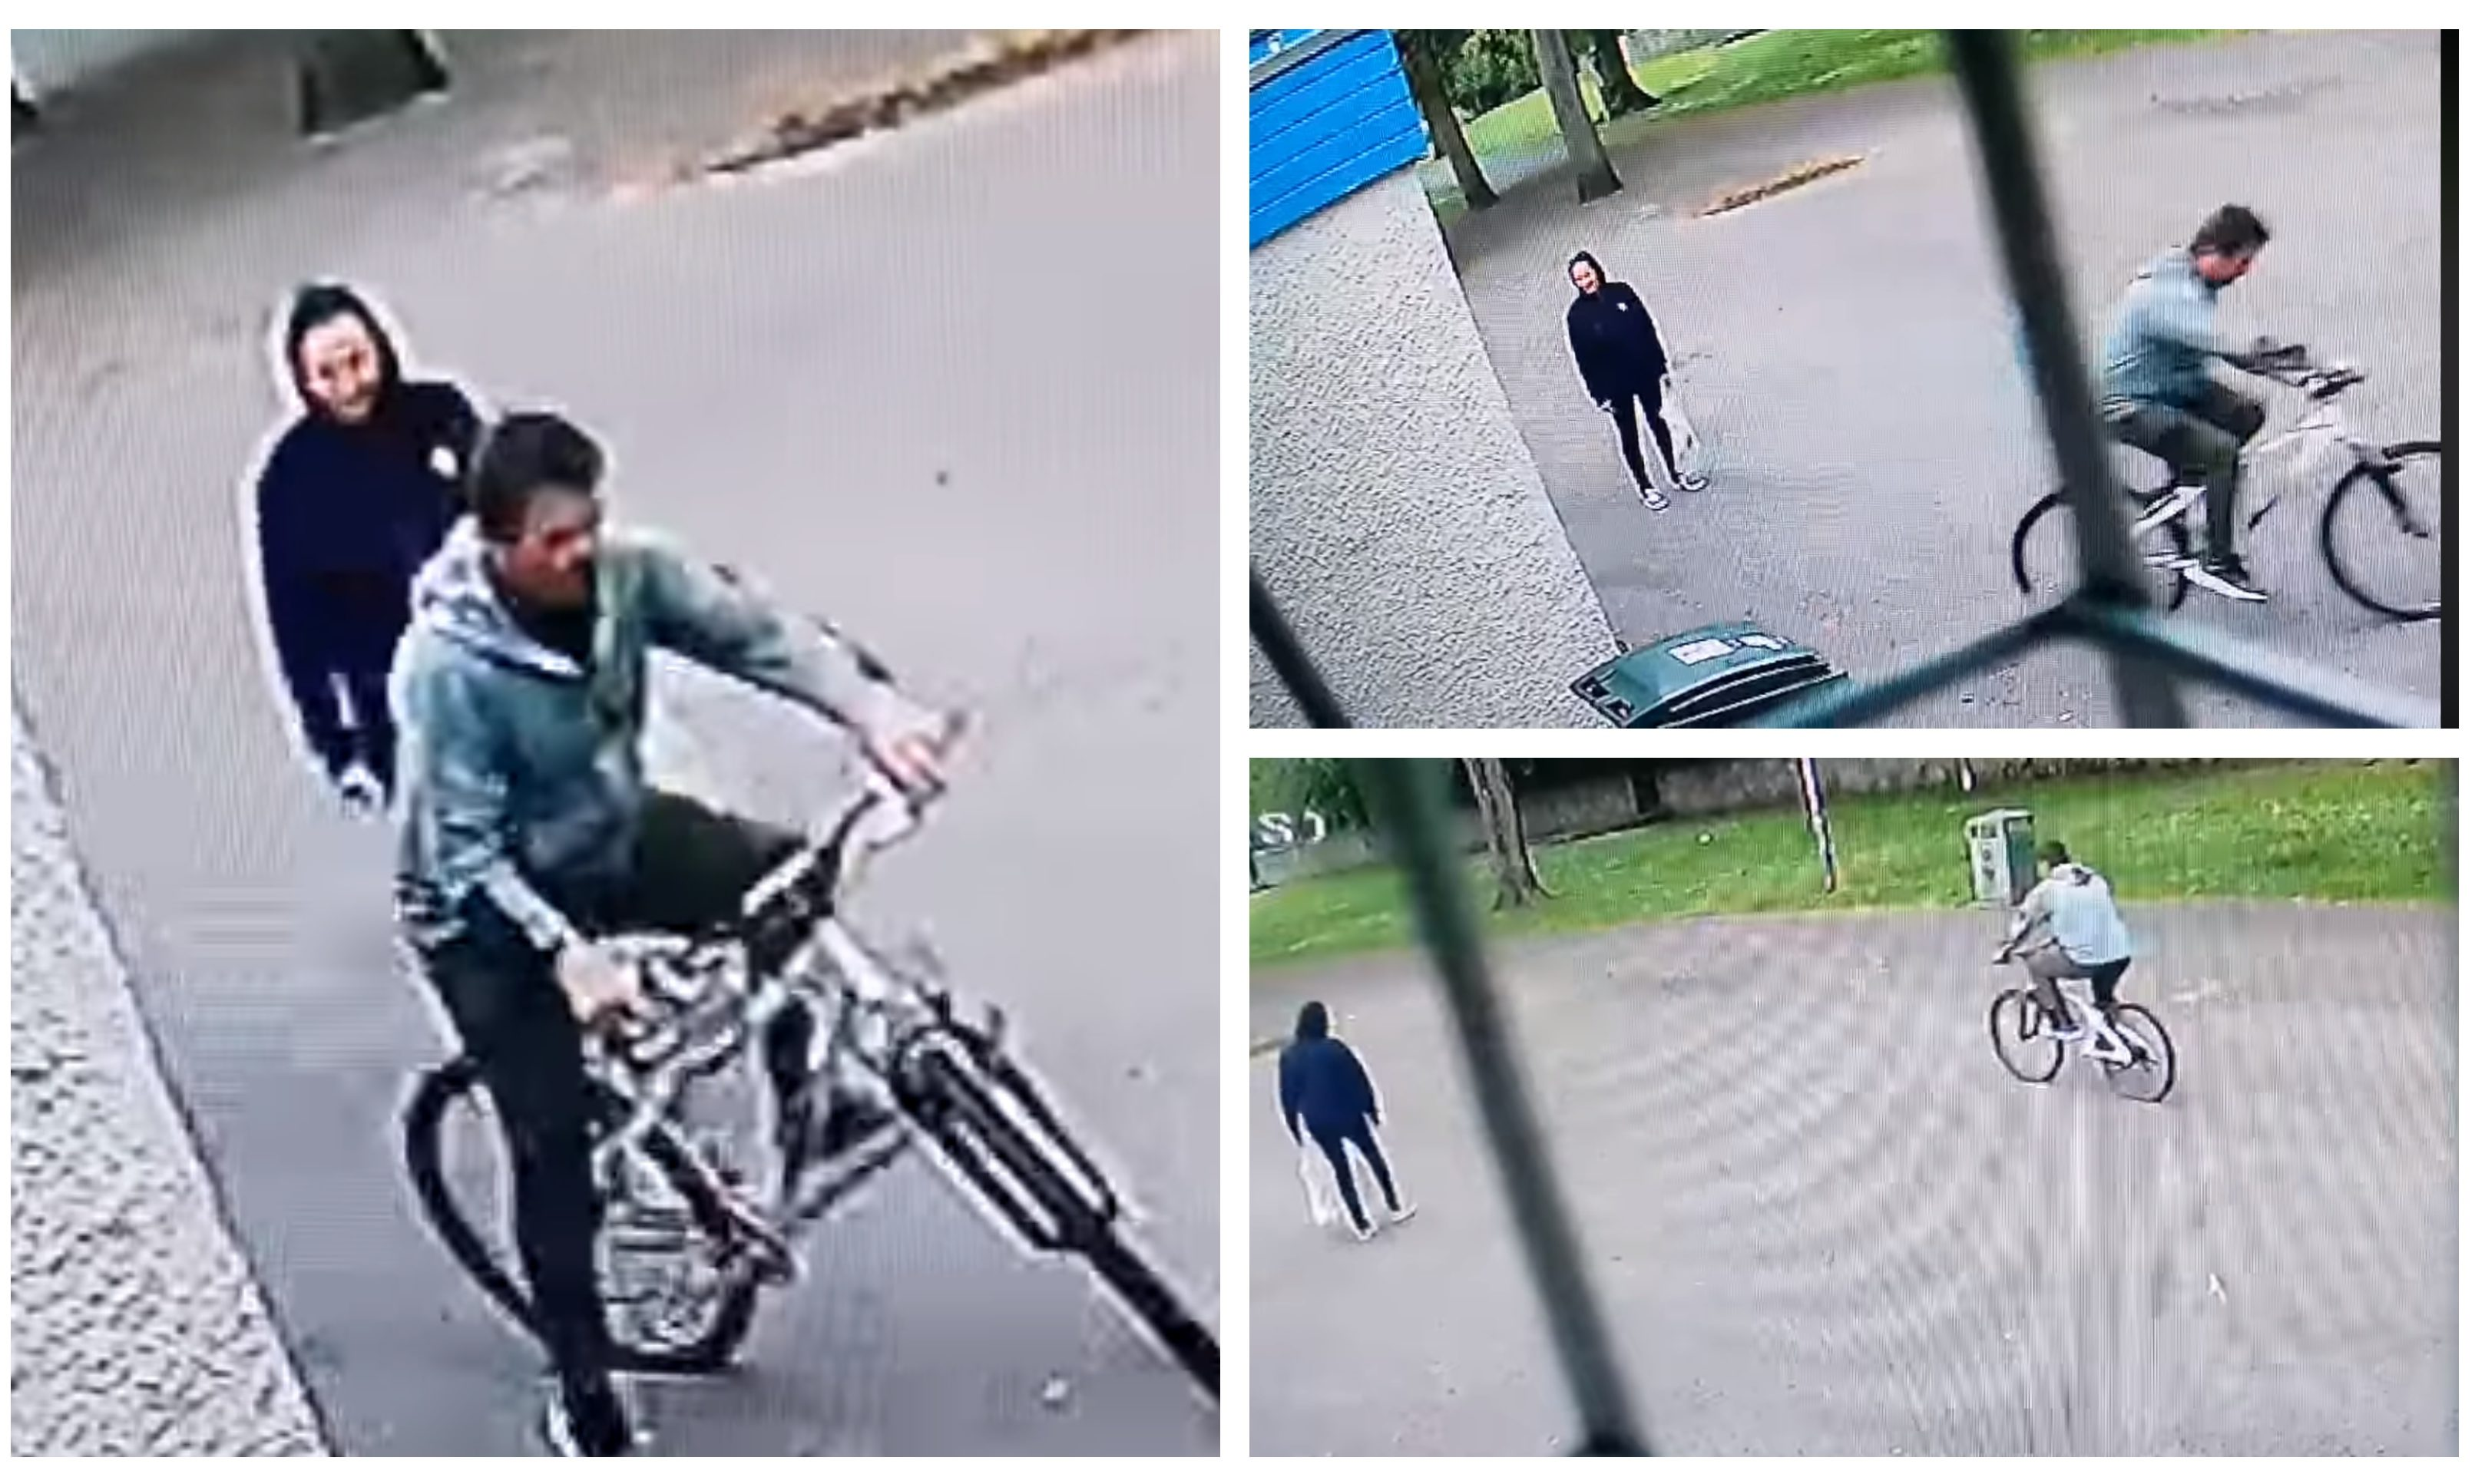 The moment the thieves took the bicycle from South Inch, Perth.